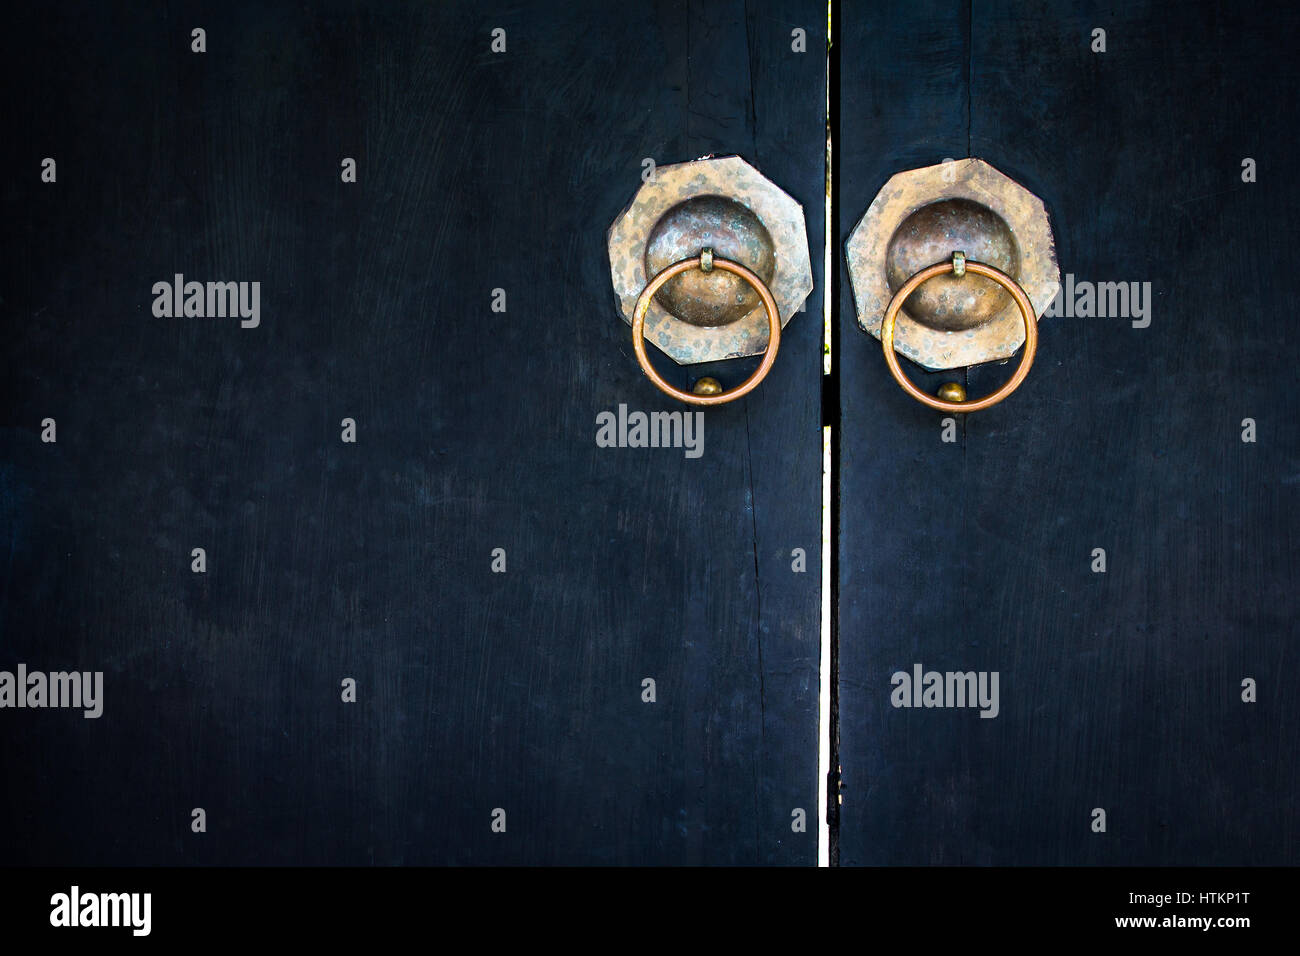 Old lockpad locked on a wooden blue door with rusty chain close up background. Stock Photo